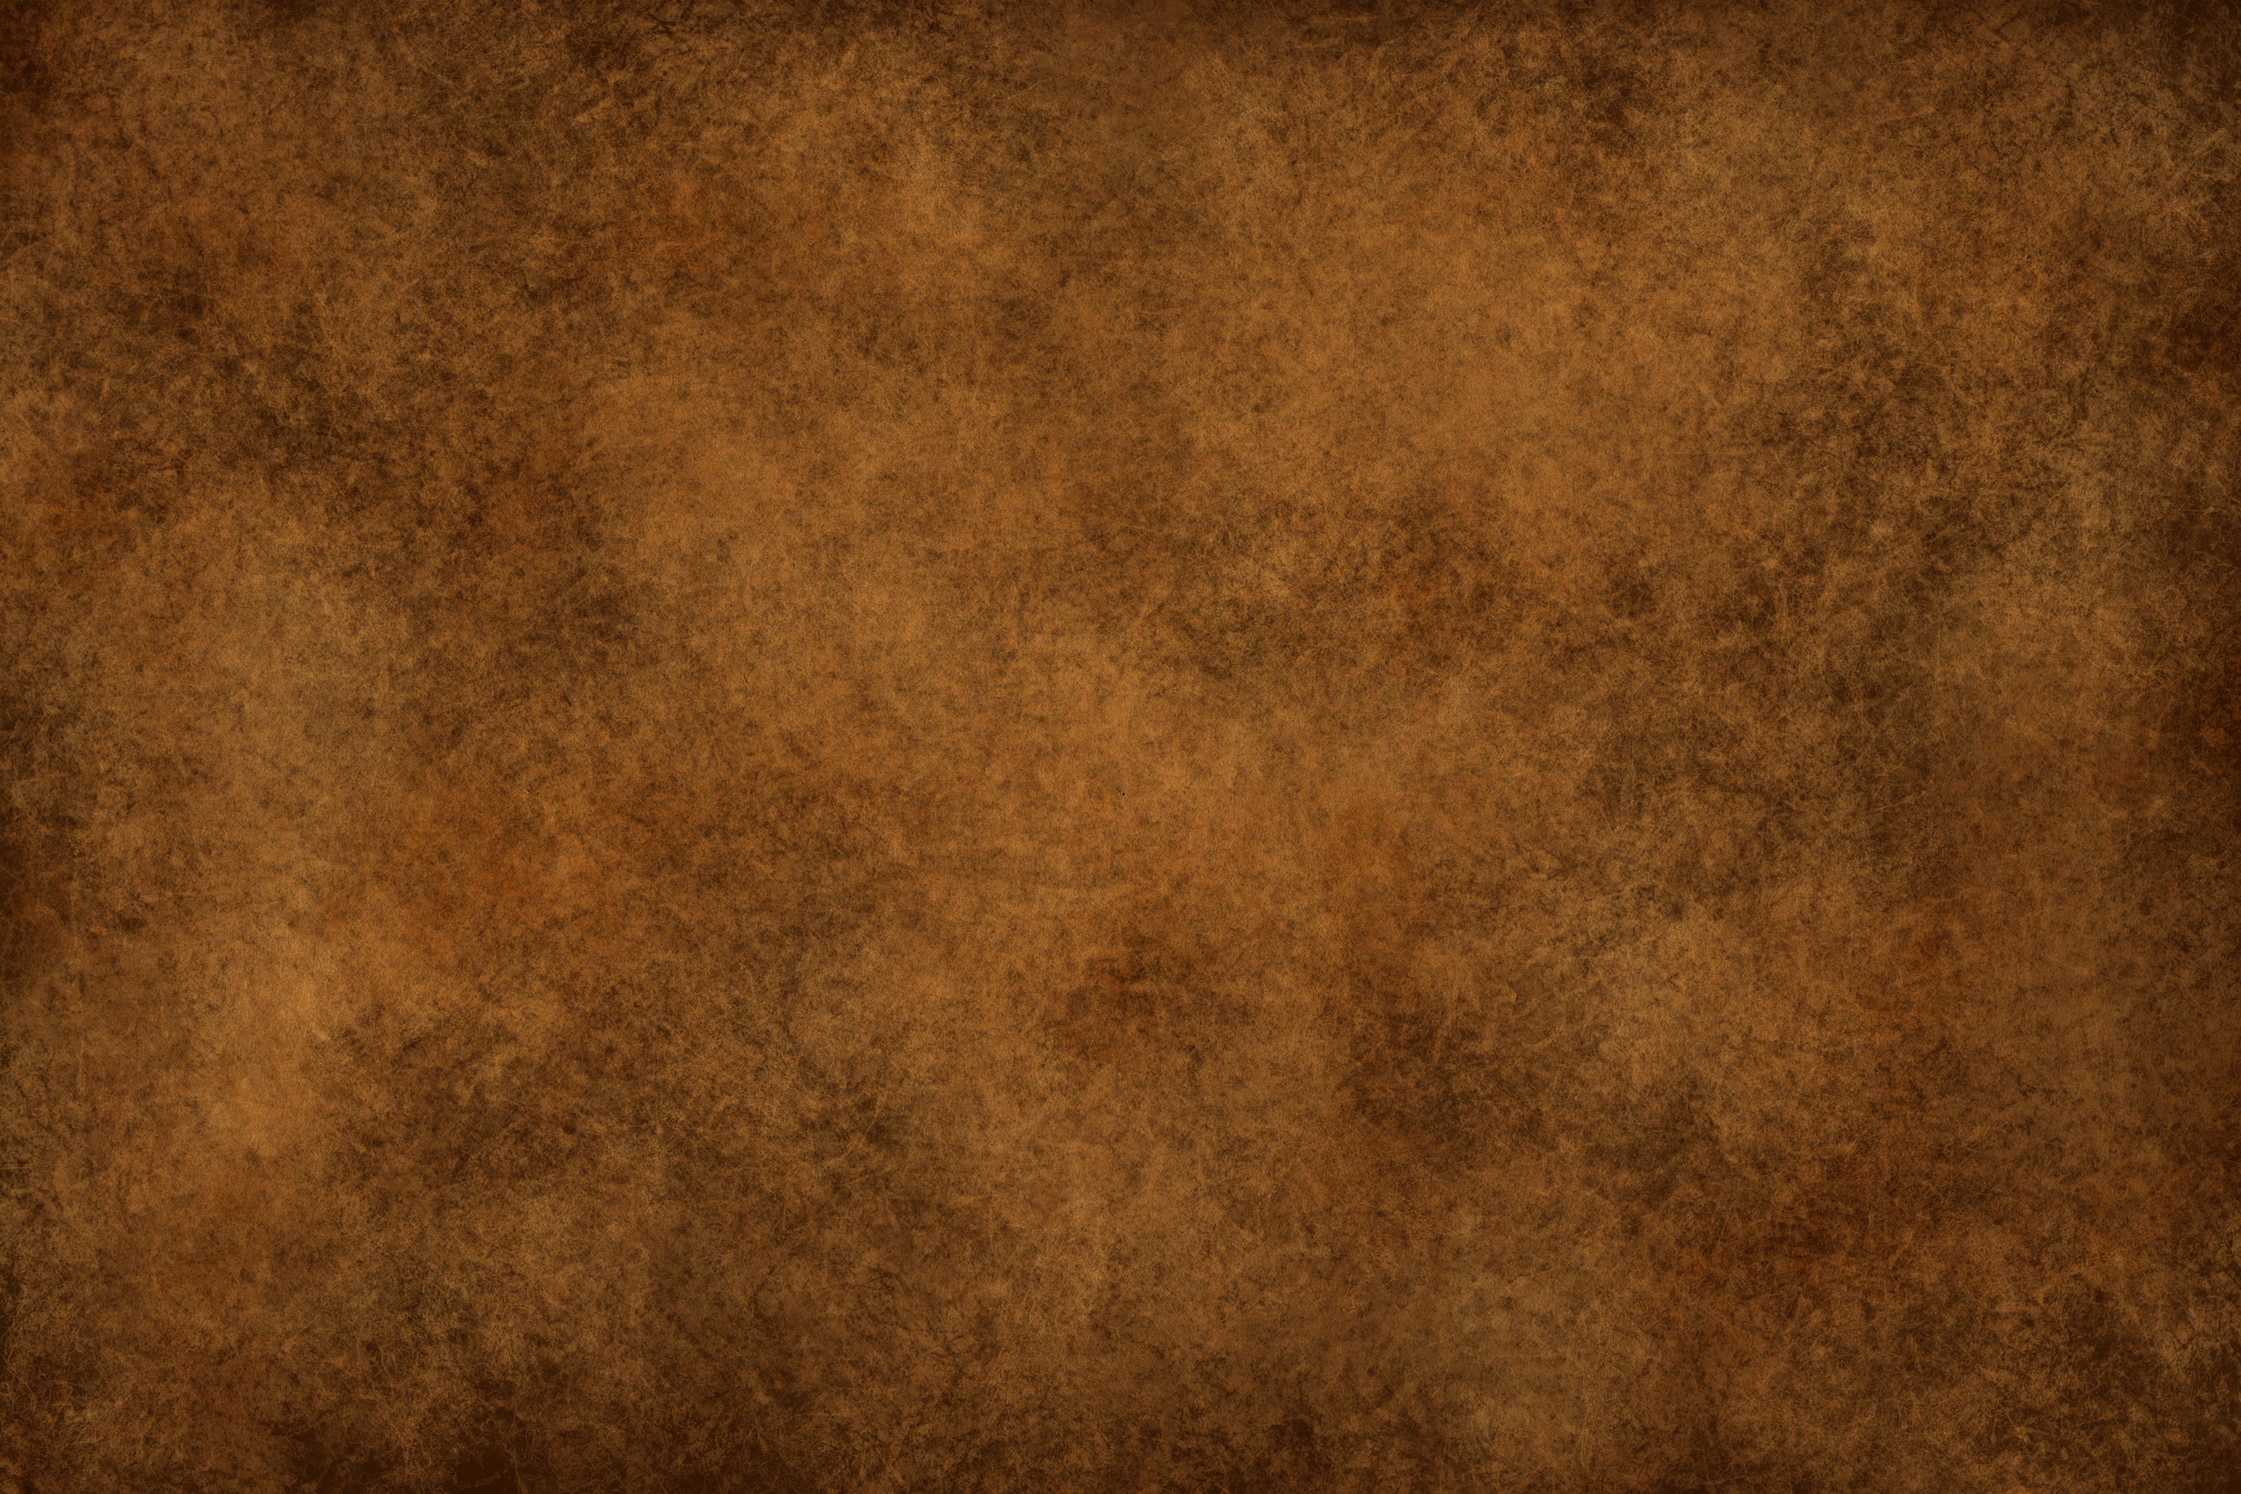 Download texture brown ragged old paper background texture 2241x1494